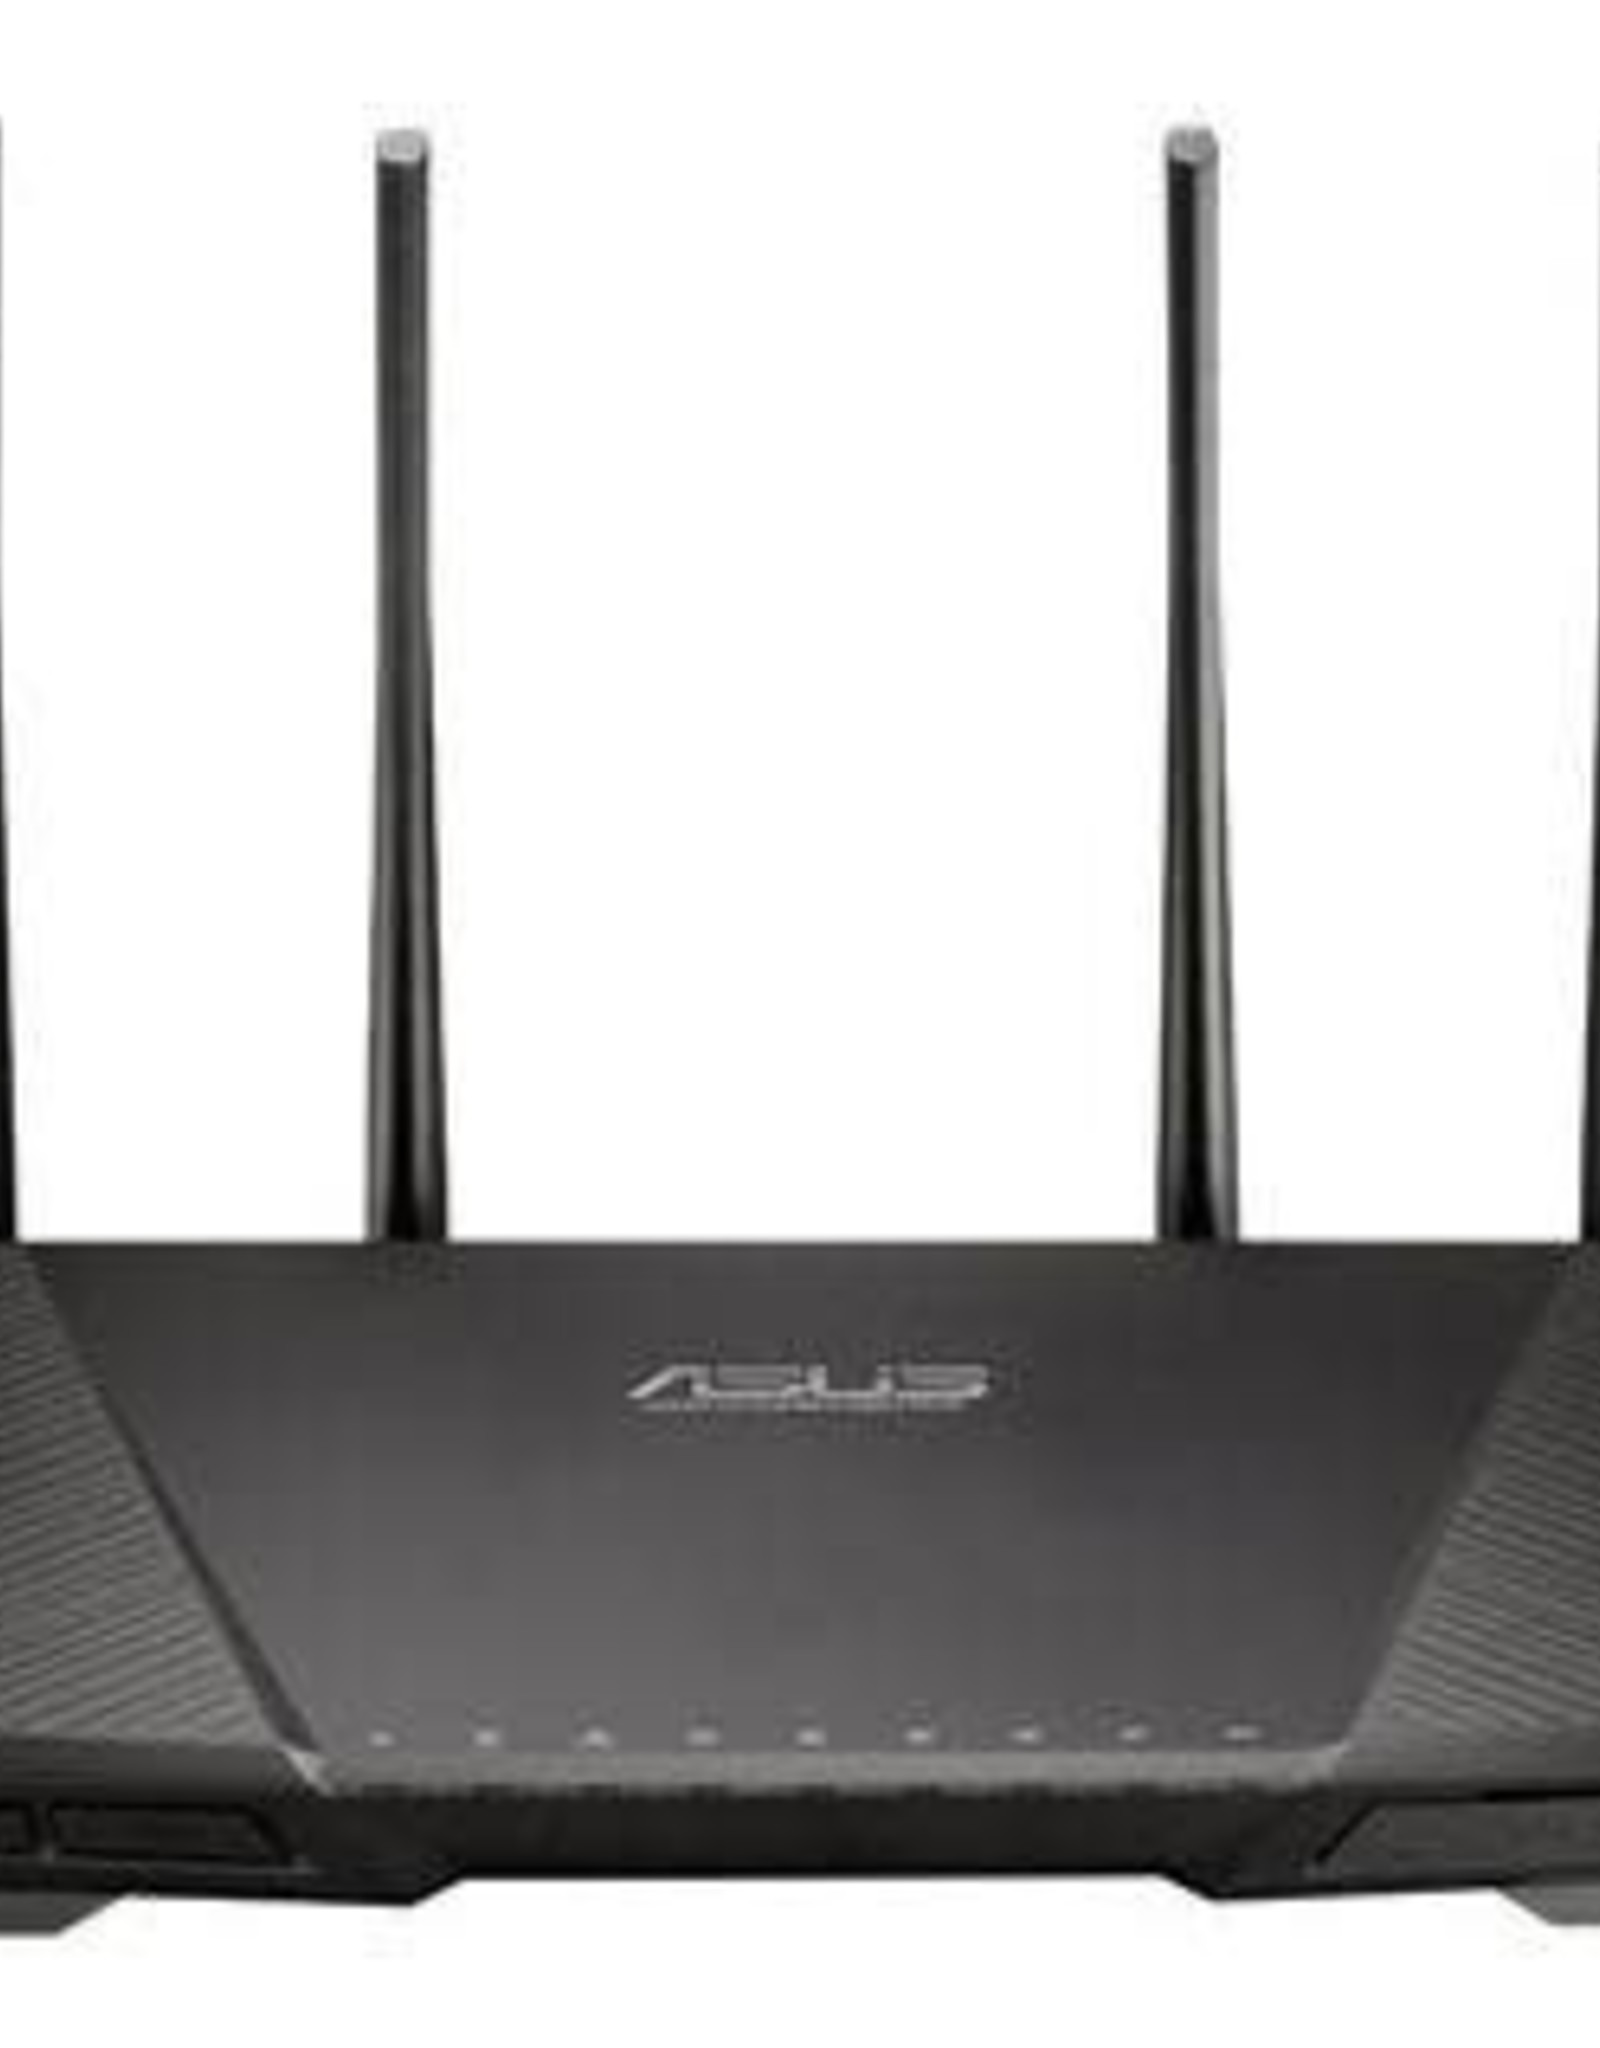 Asus Asus RT-AC3200 Tri Band Smart Router RT-AC3200